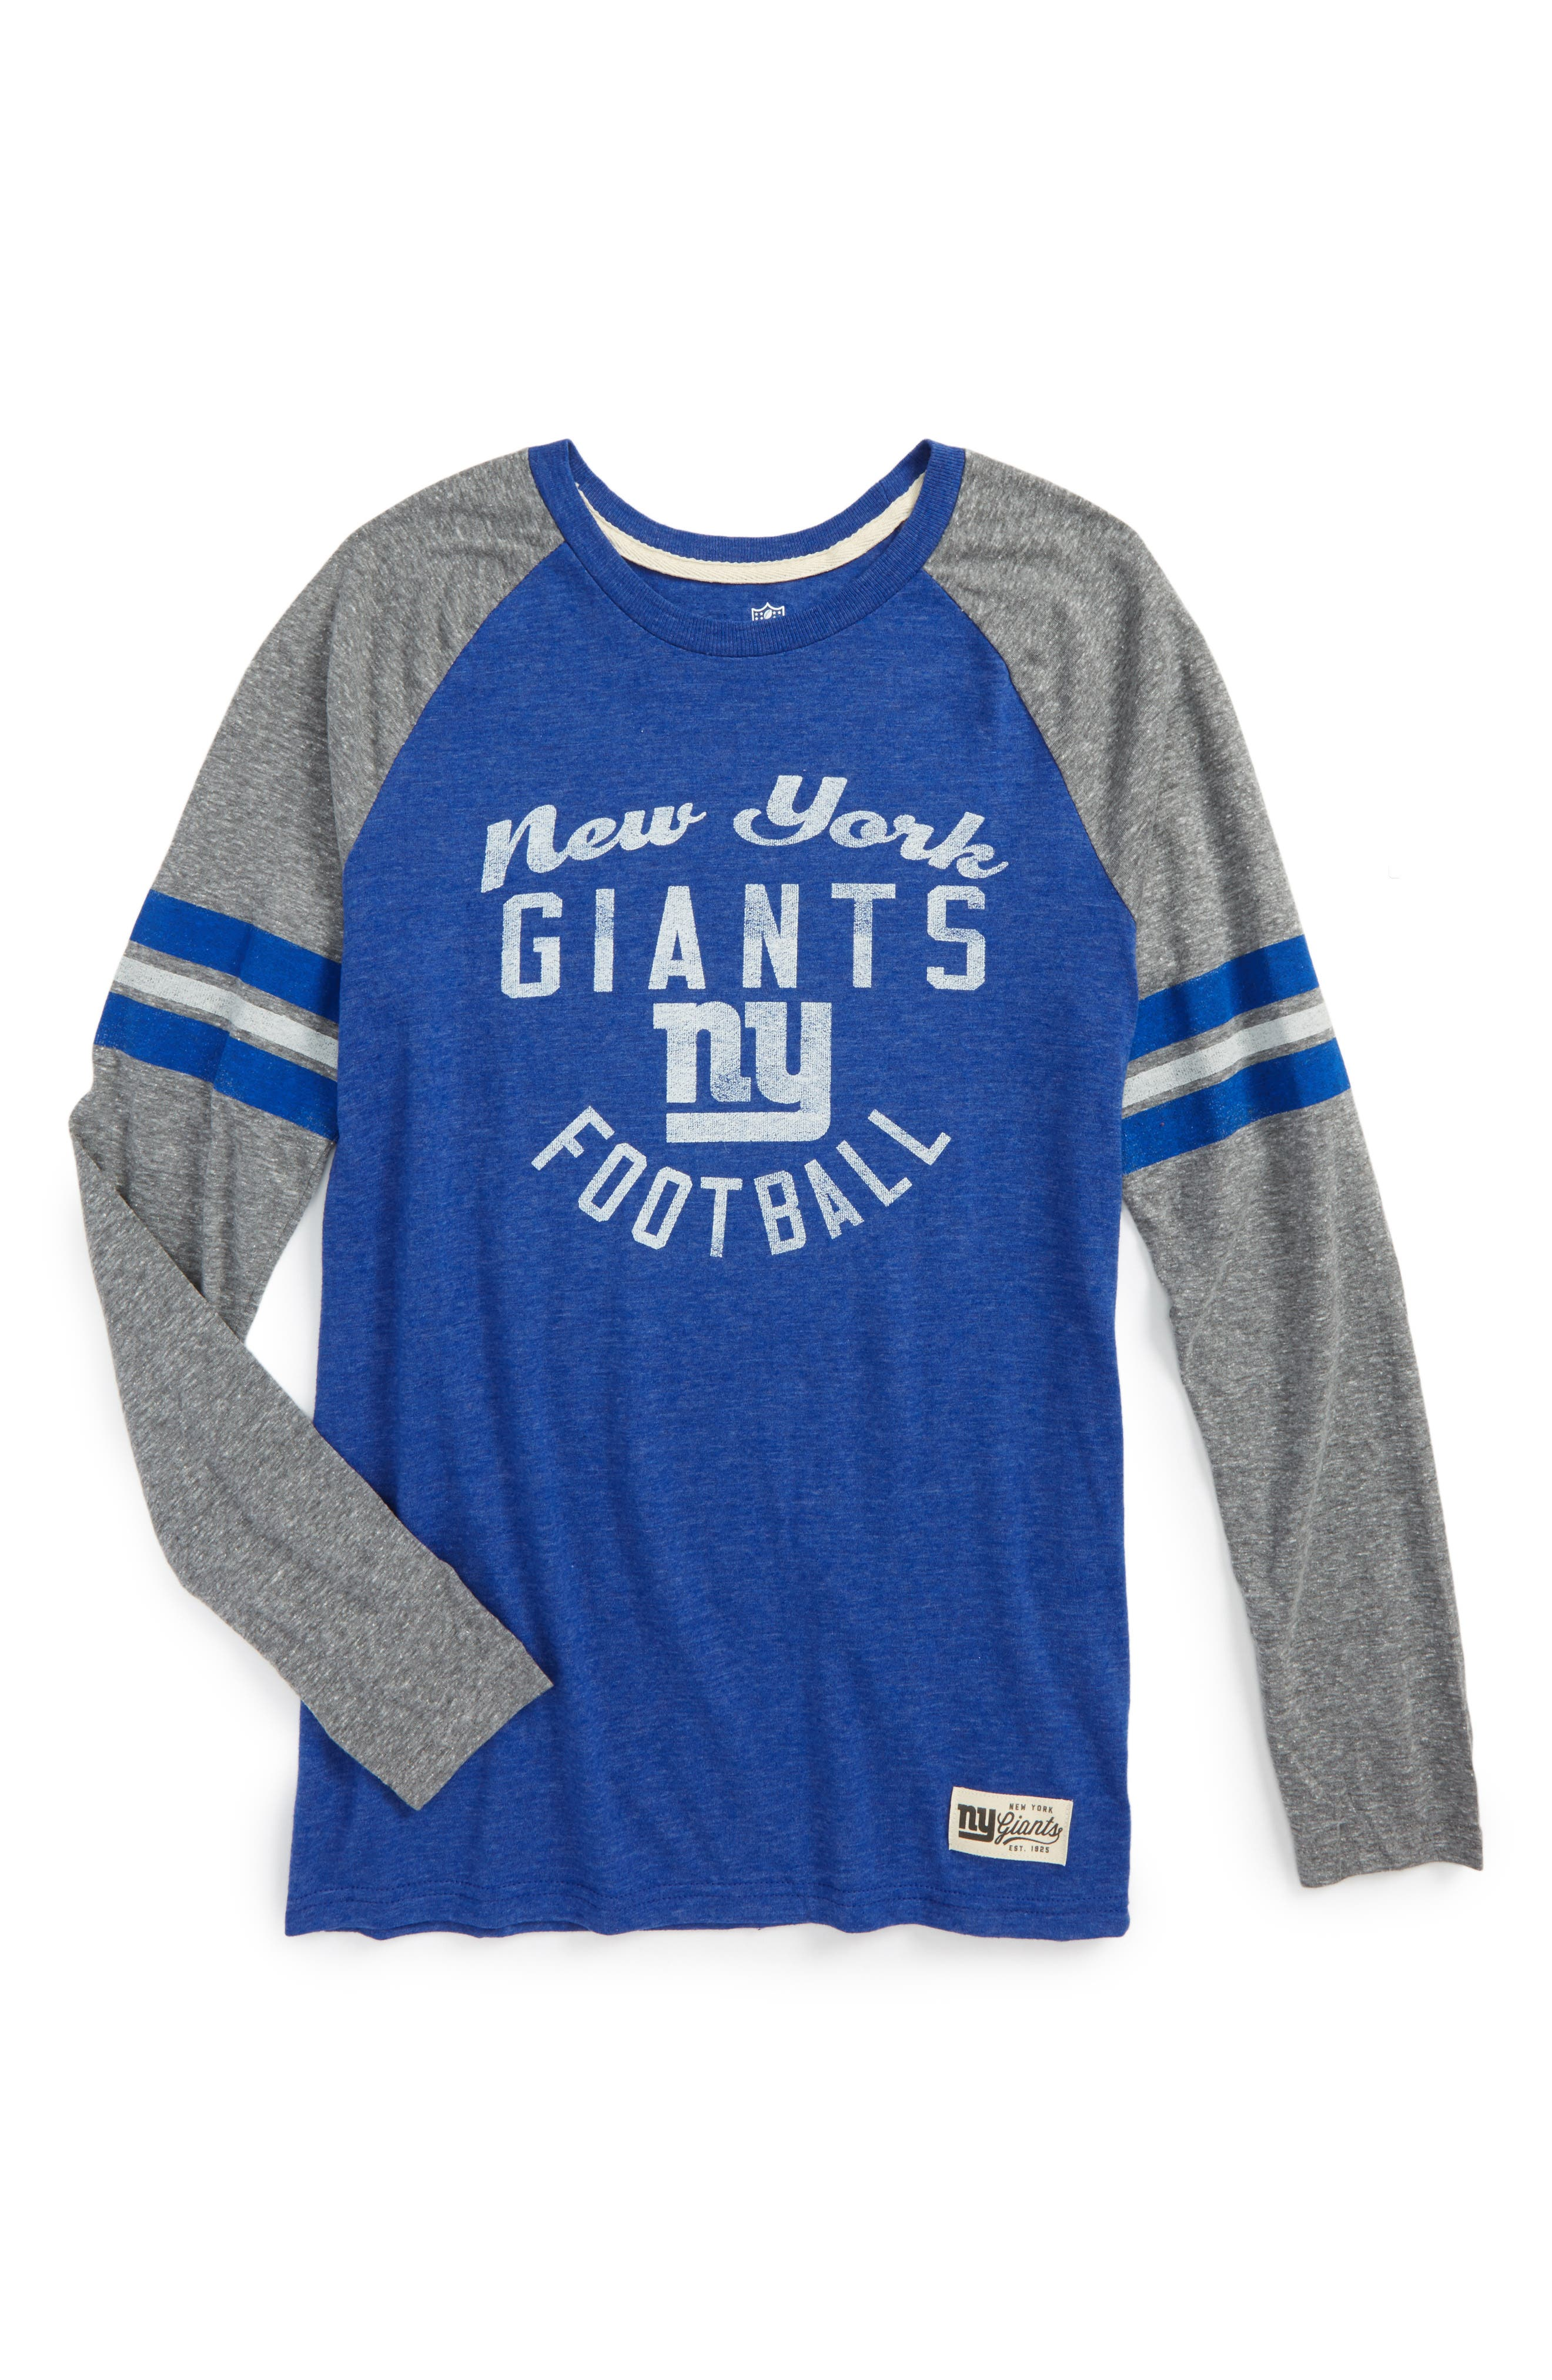 NFL New York Giants Distressed Logo T-Shirt,                         Main,                         color, 400